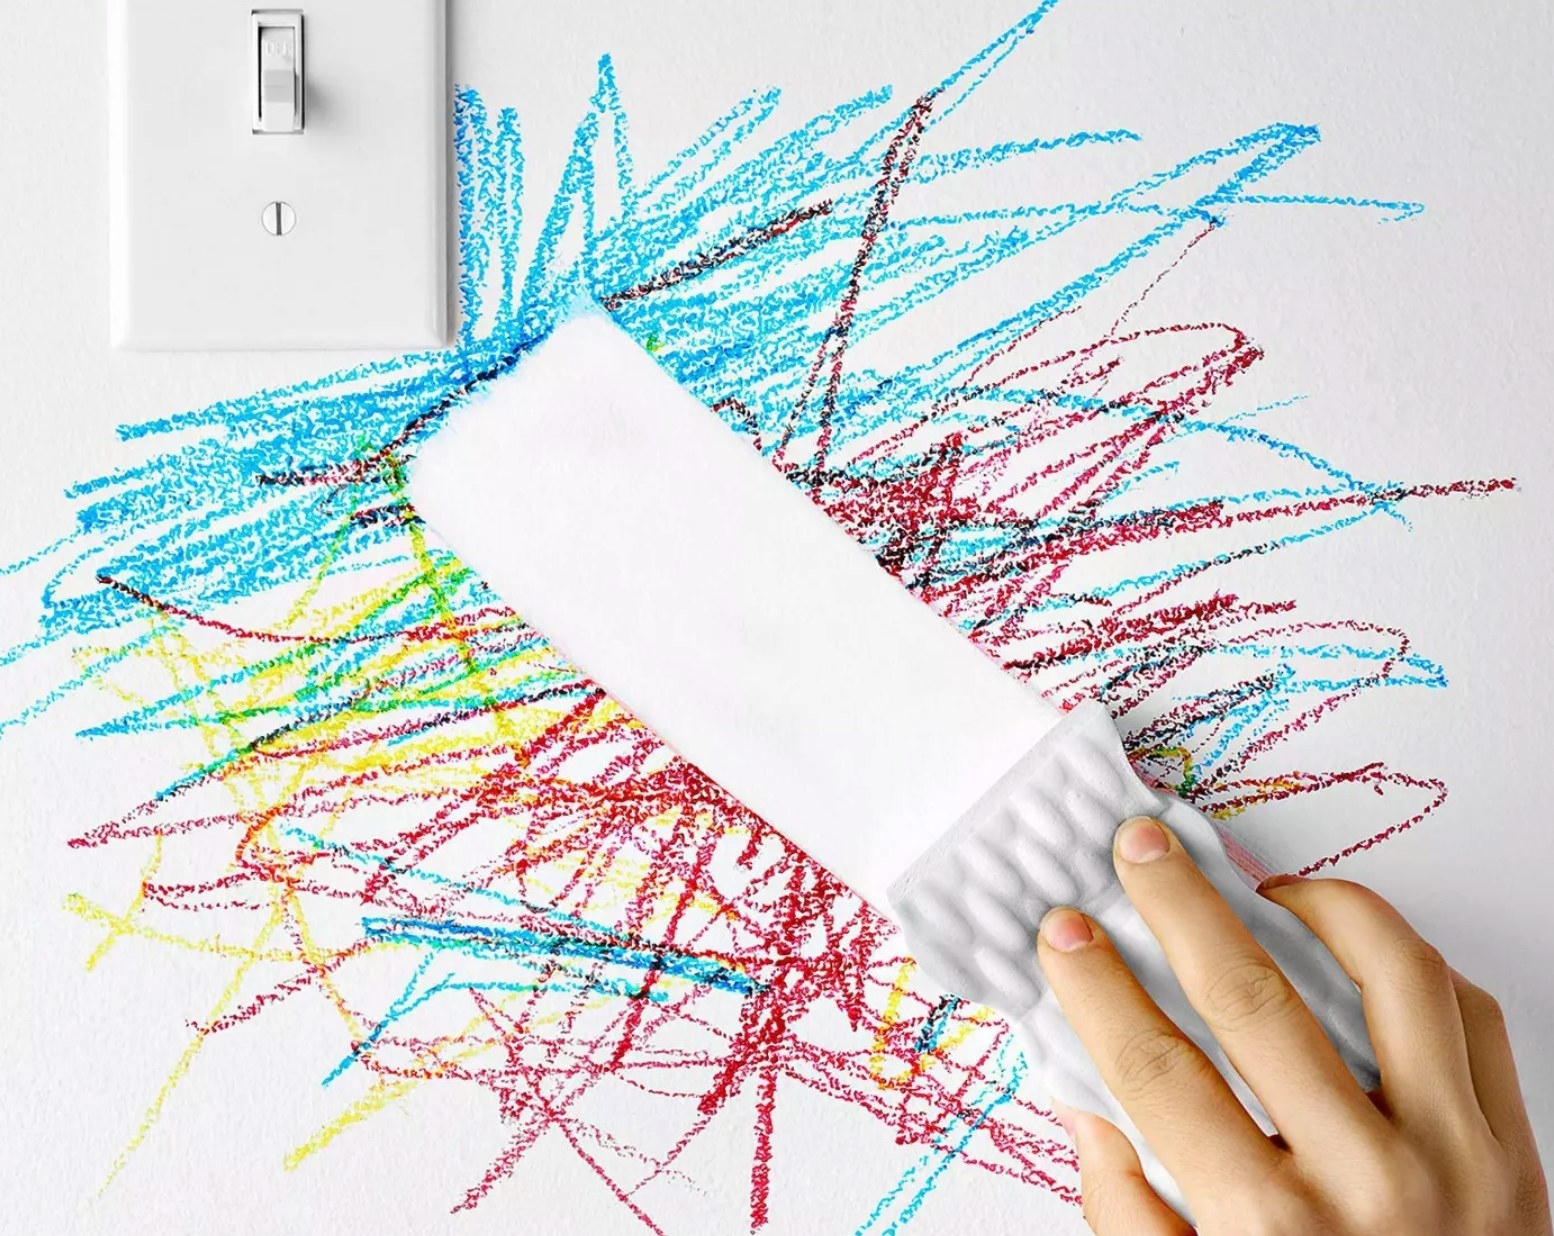 White magic eraser wipes away crayon drawings from a fridge